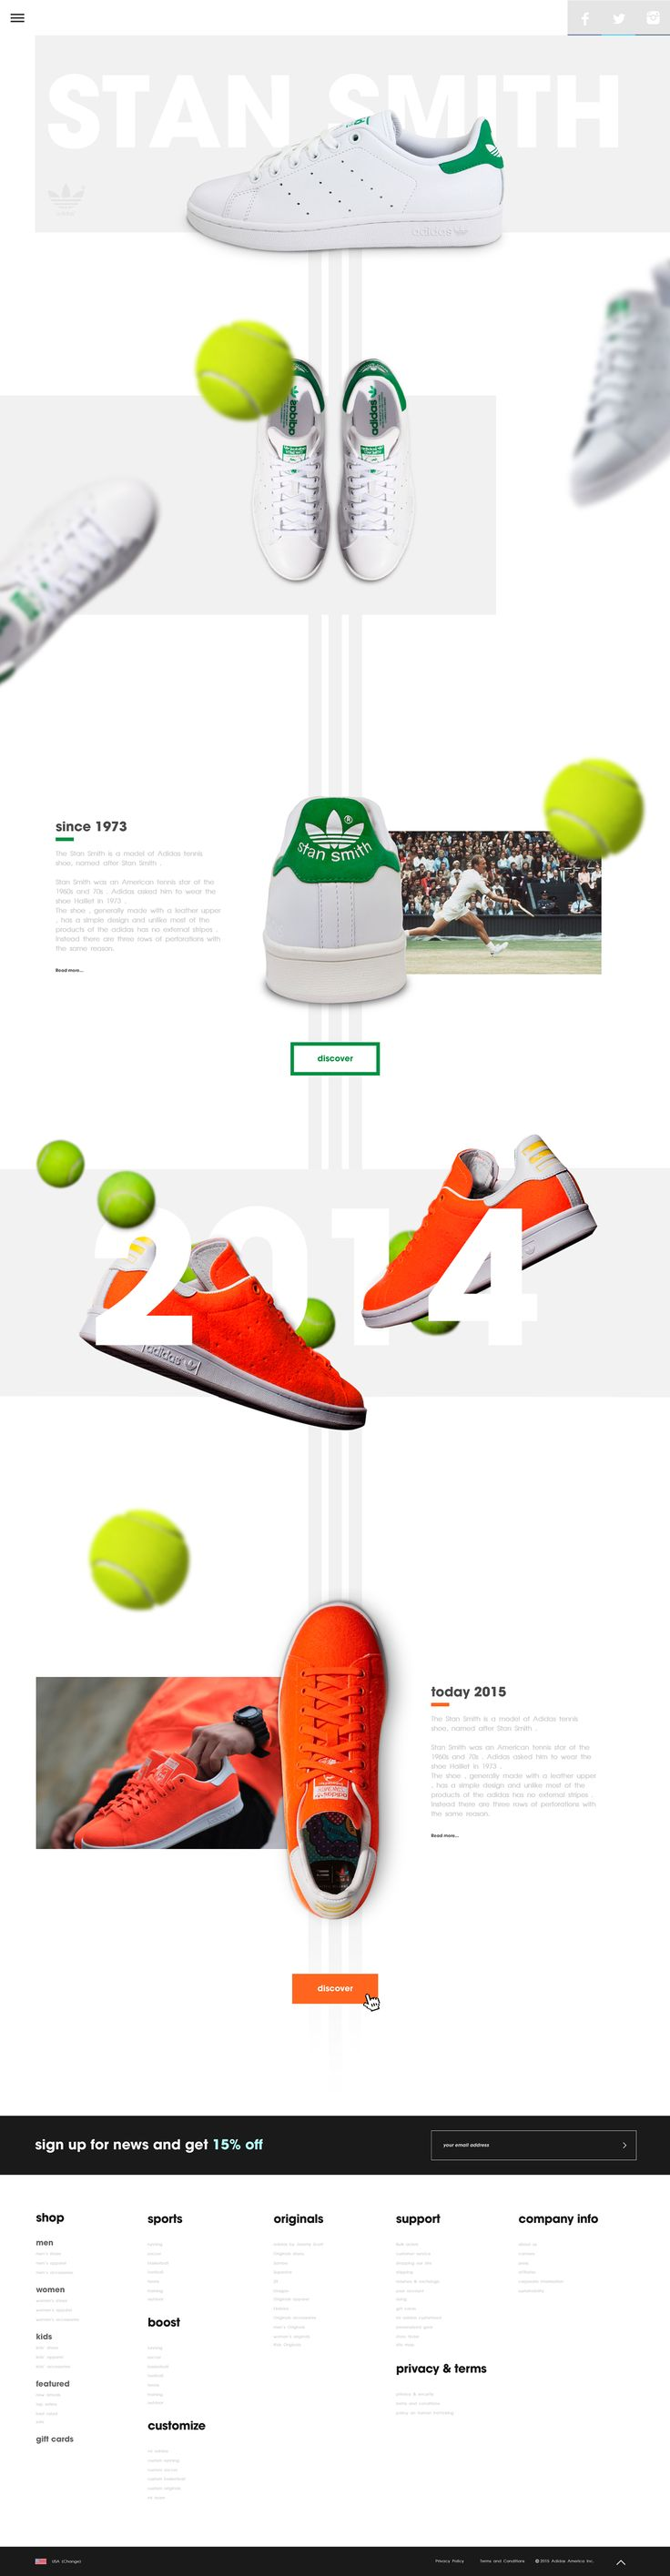 Clean, short but clear storytelling around the shoe and what it did to tennis.. Nice details with the 3-stripe in the background and tennis balls floating.